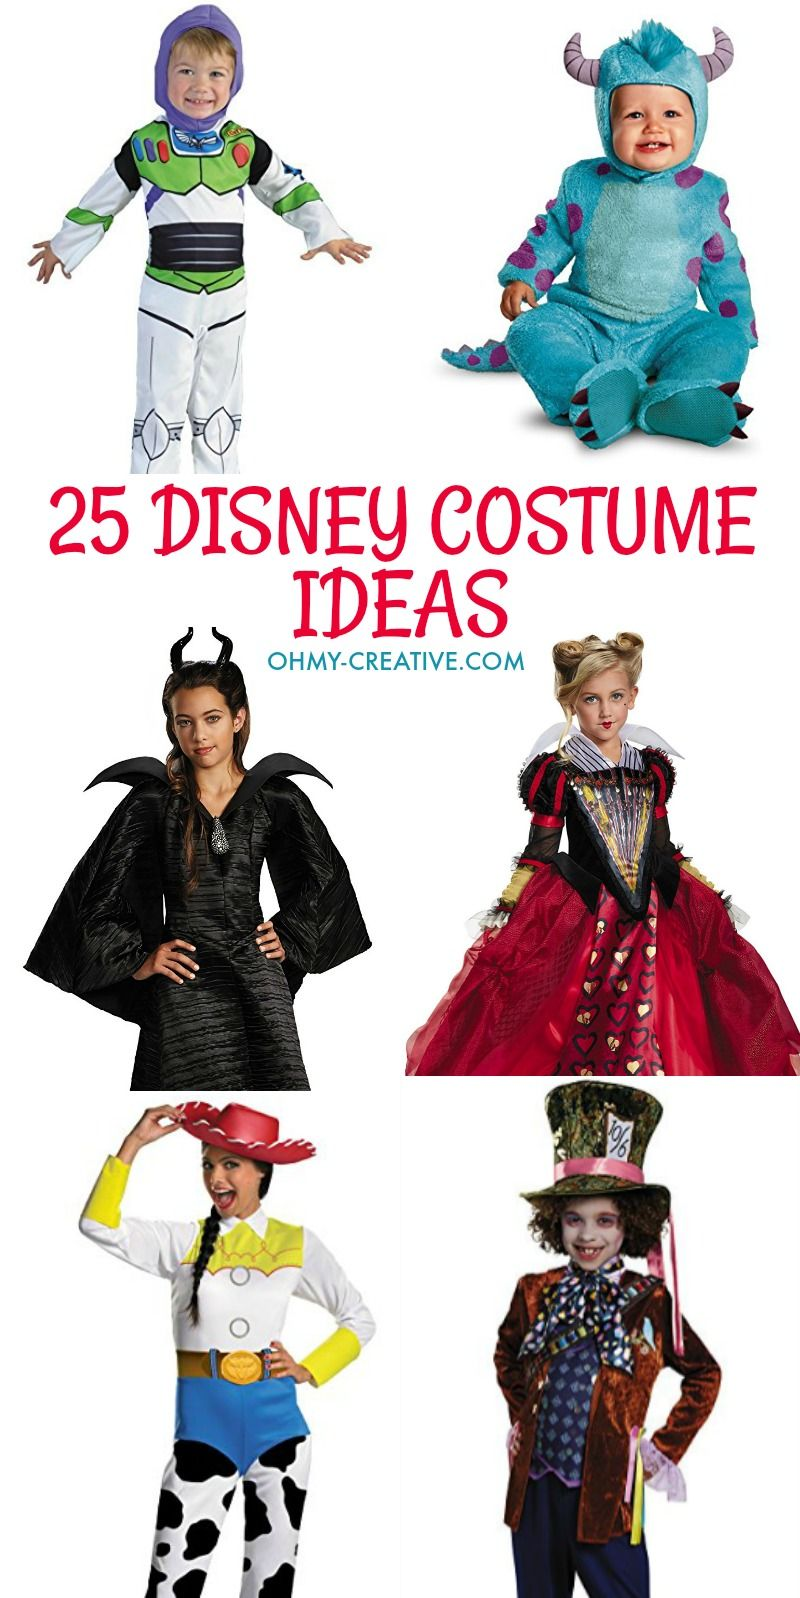 25 Disney Costume Ideas On Amazon Creative halloween